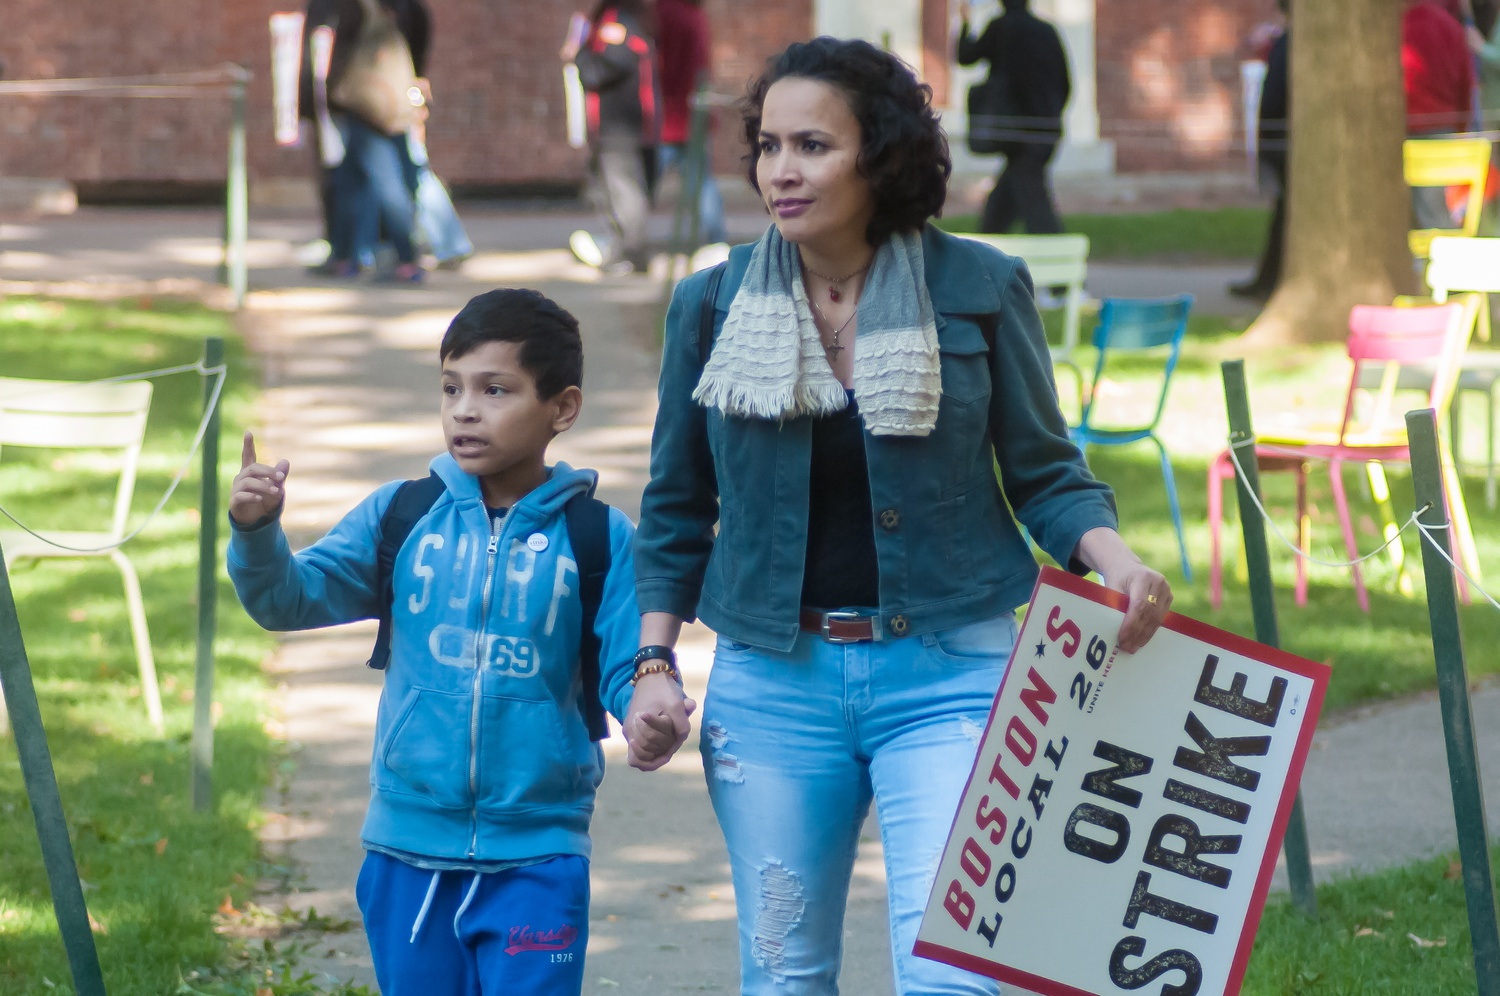 Supporters of all ages gathered in the Science Center Plaza on Wednesday at 9 a.m., three hours after the HUDS strike began, for a kickoff before marching through Harvard Yard in protest.